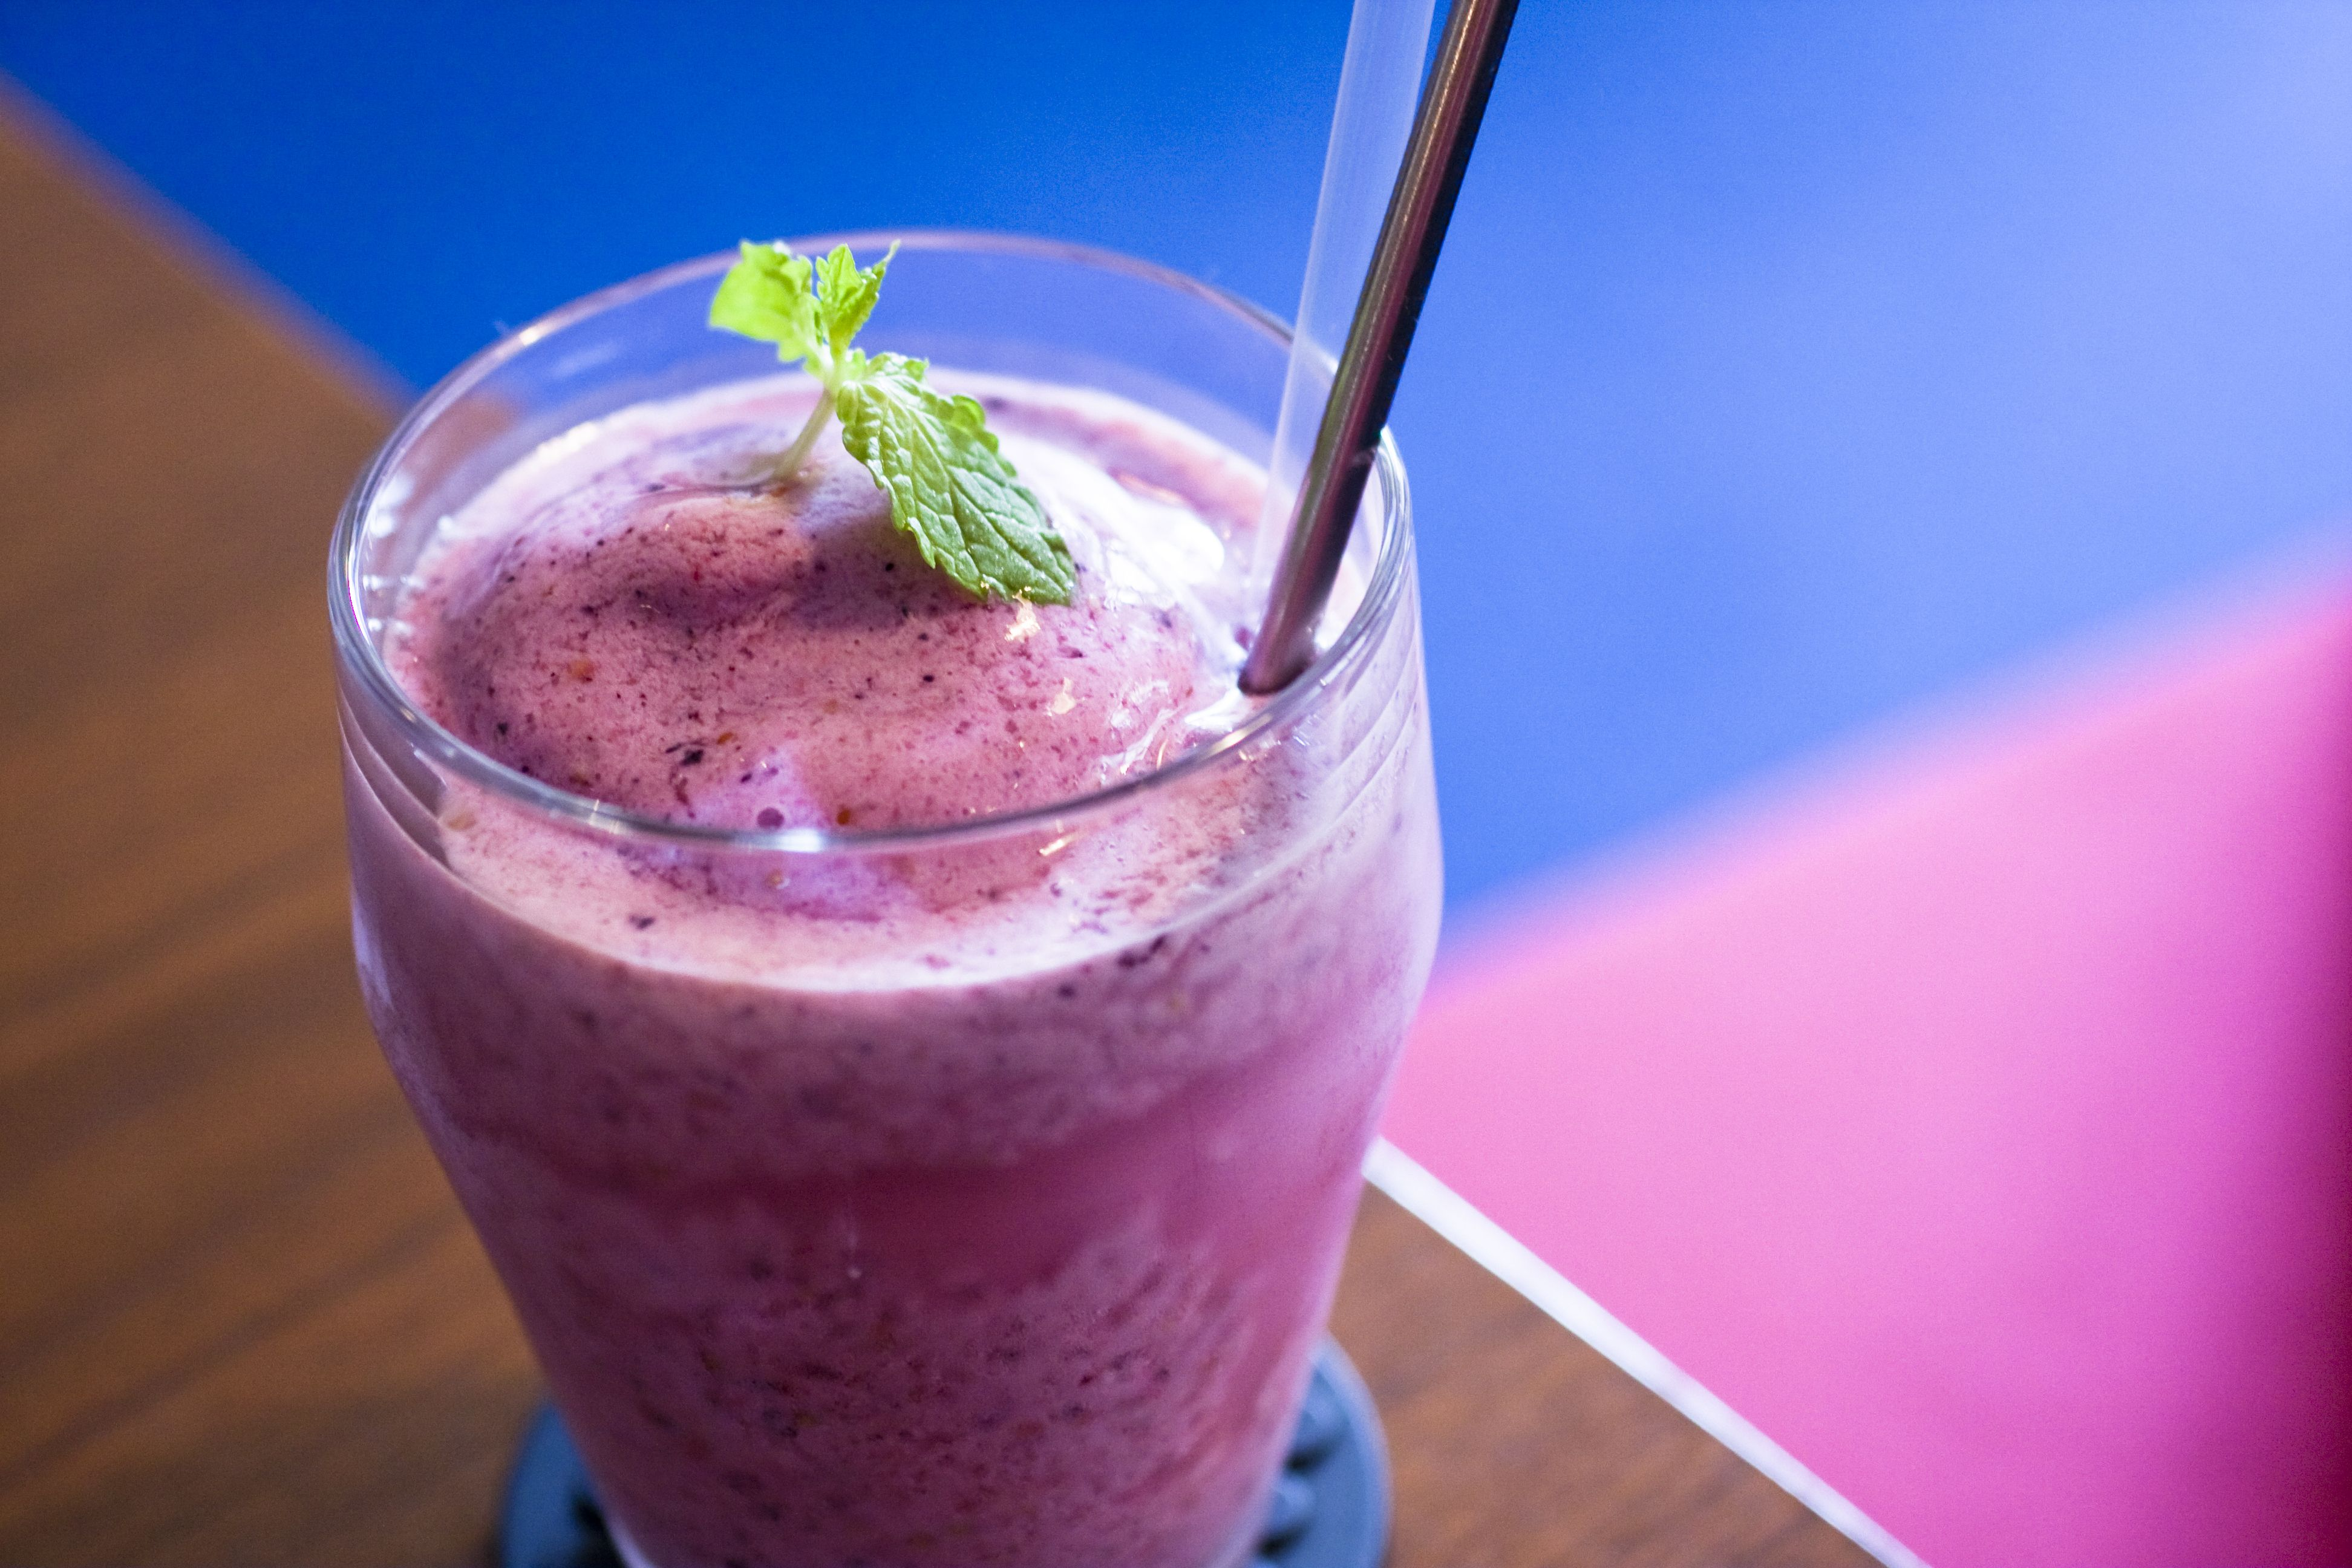 You have a massive smoothie and still feel hungry soon after. Whats up with that? Experts explain and offer awesome tips for more filling smoothies.